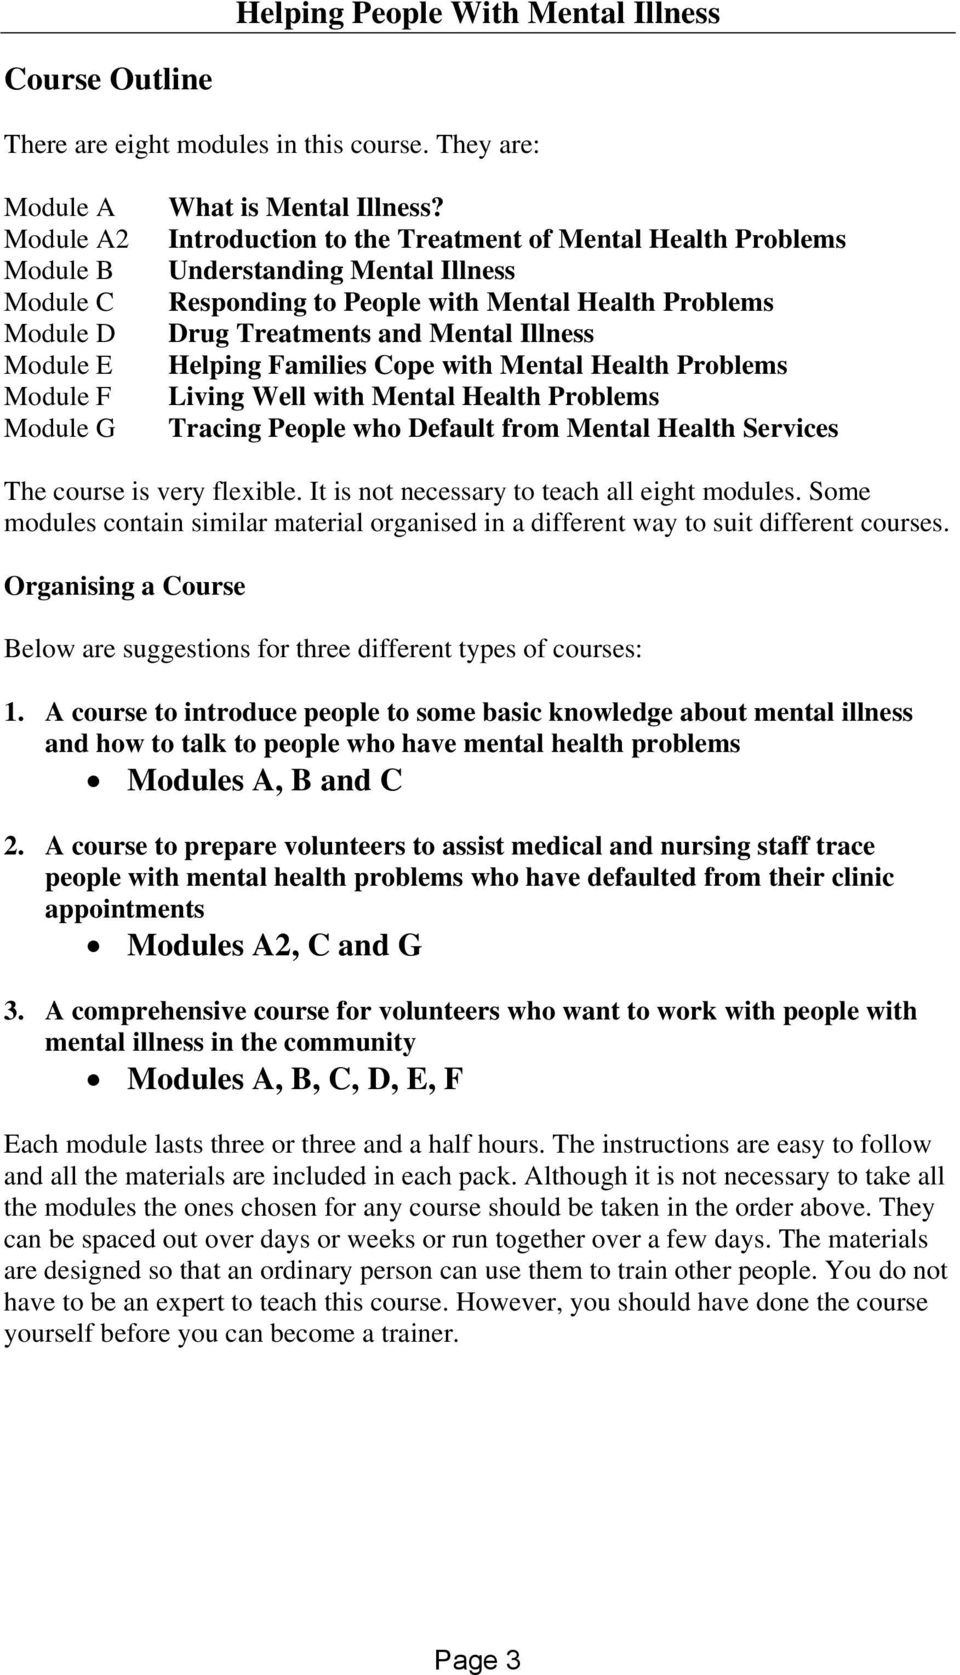 Mental Health Problems Living Well with Mental Health Problems Tracing People who Default from Mental Health Services The course is very flexible. It is not necessary to teach all eight modules.